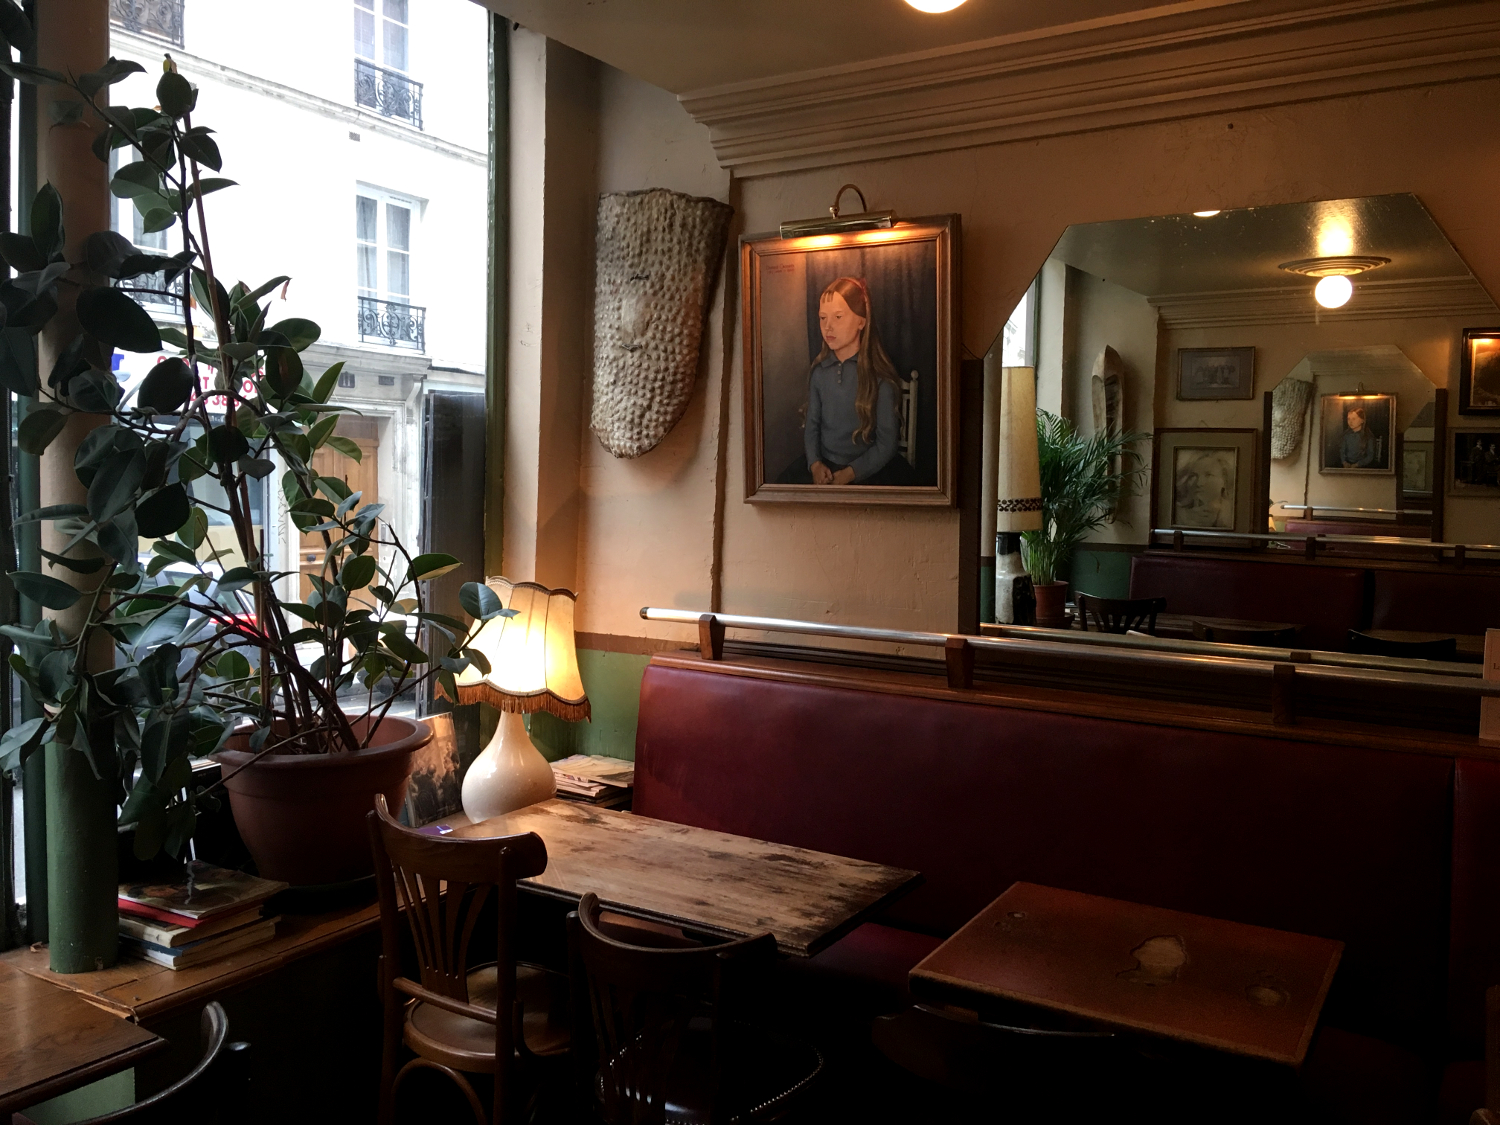 rocaille-blog-paris-cafe-de-lindustrie-restaurant-where-to-eat-1